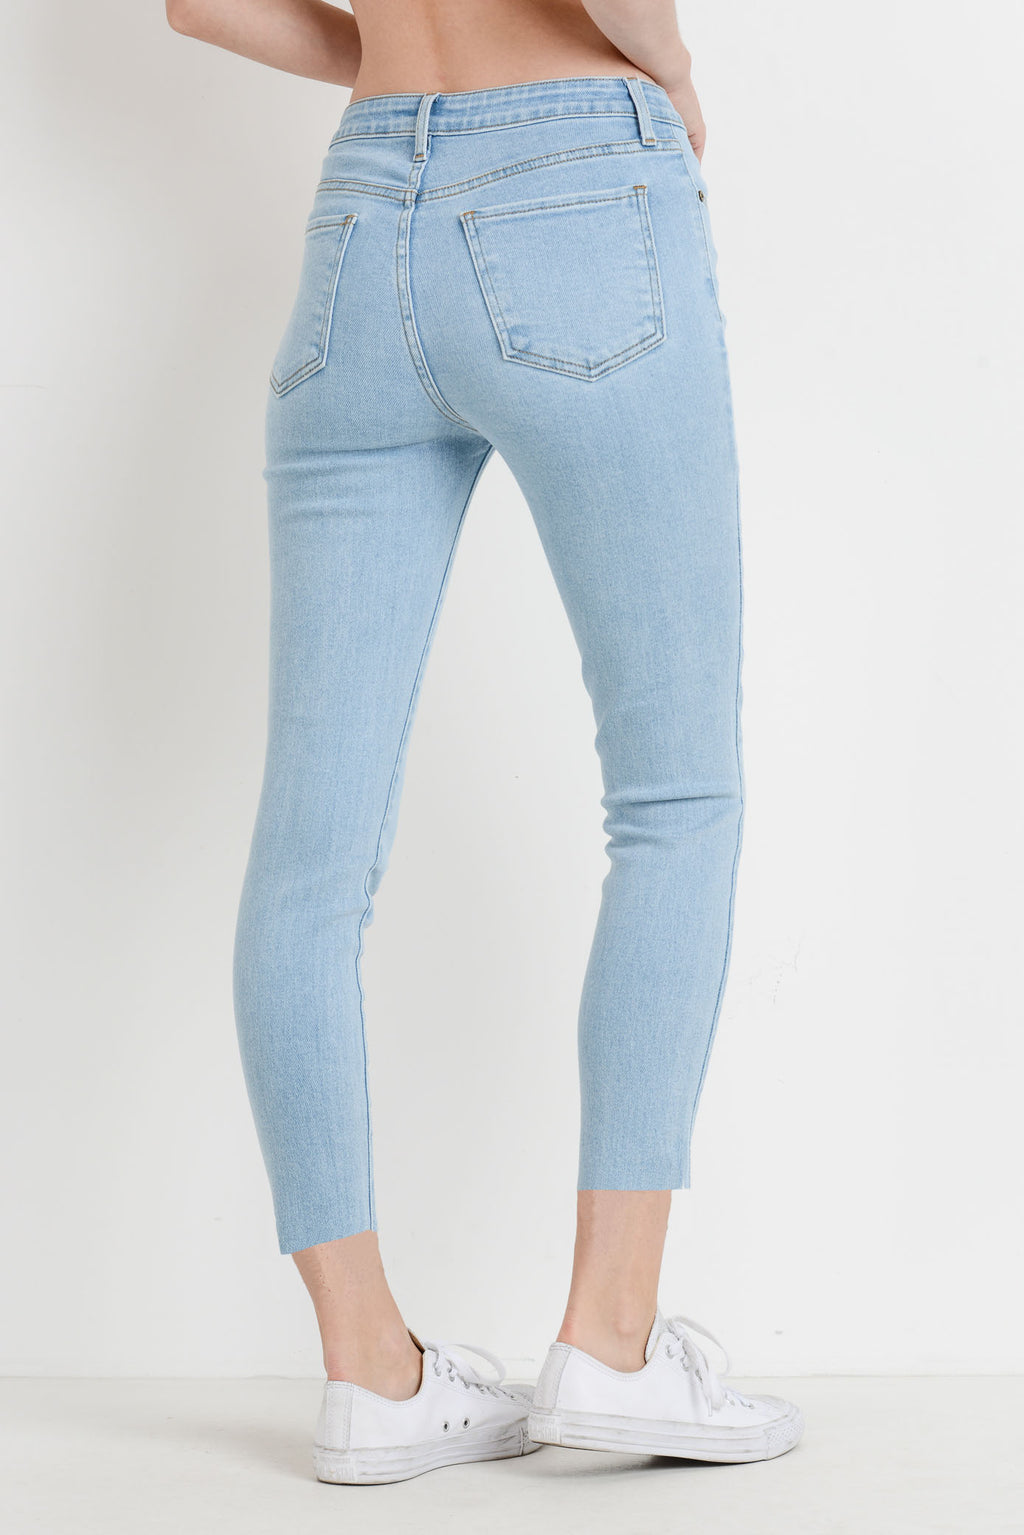 Cropped Light Wash Skinny Jeans with Scissor Cut Hem